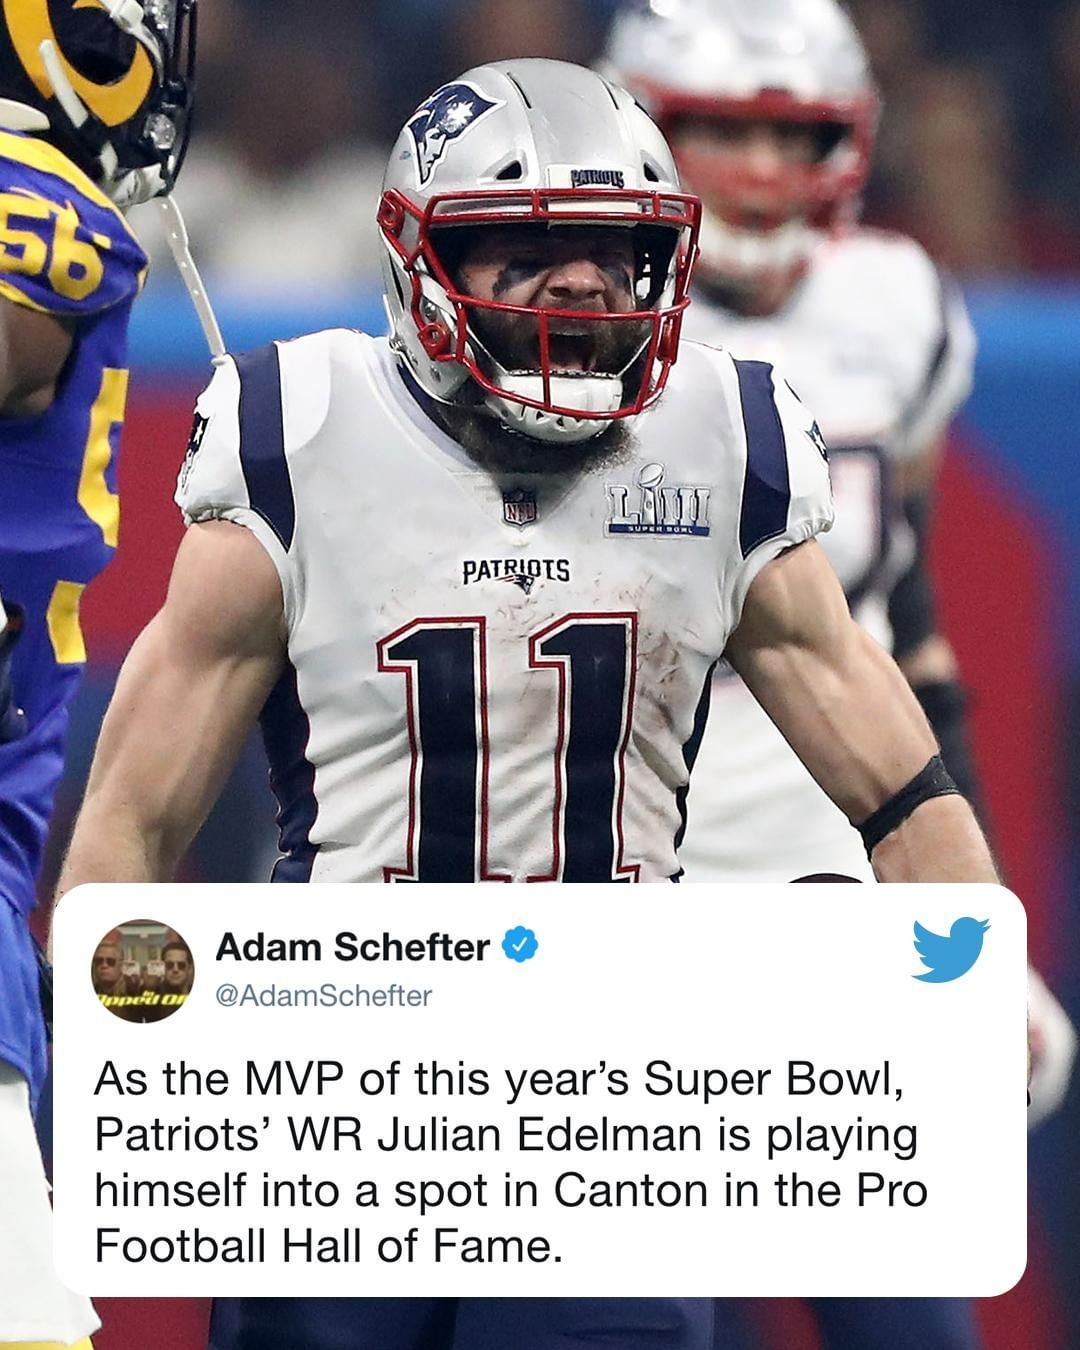 Nfl On Espn On Instagram Julian Edelman S Got A Super Bowl Mvp On His Resume And Adamschefter Thinks He S Playing His Way Int Julian Edelman Super Bowl Mvp